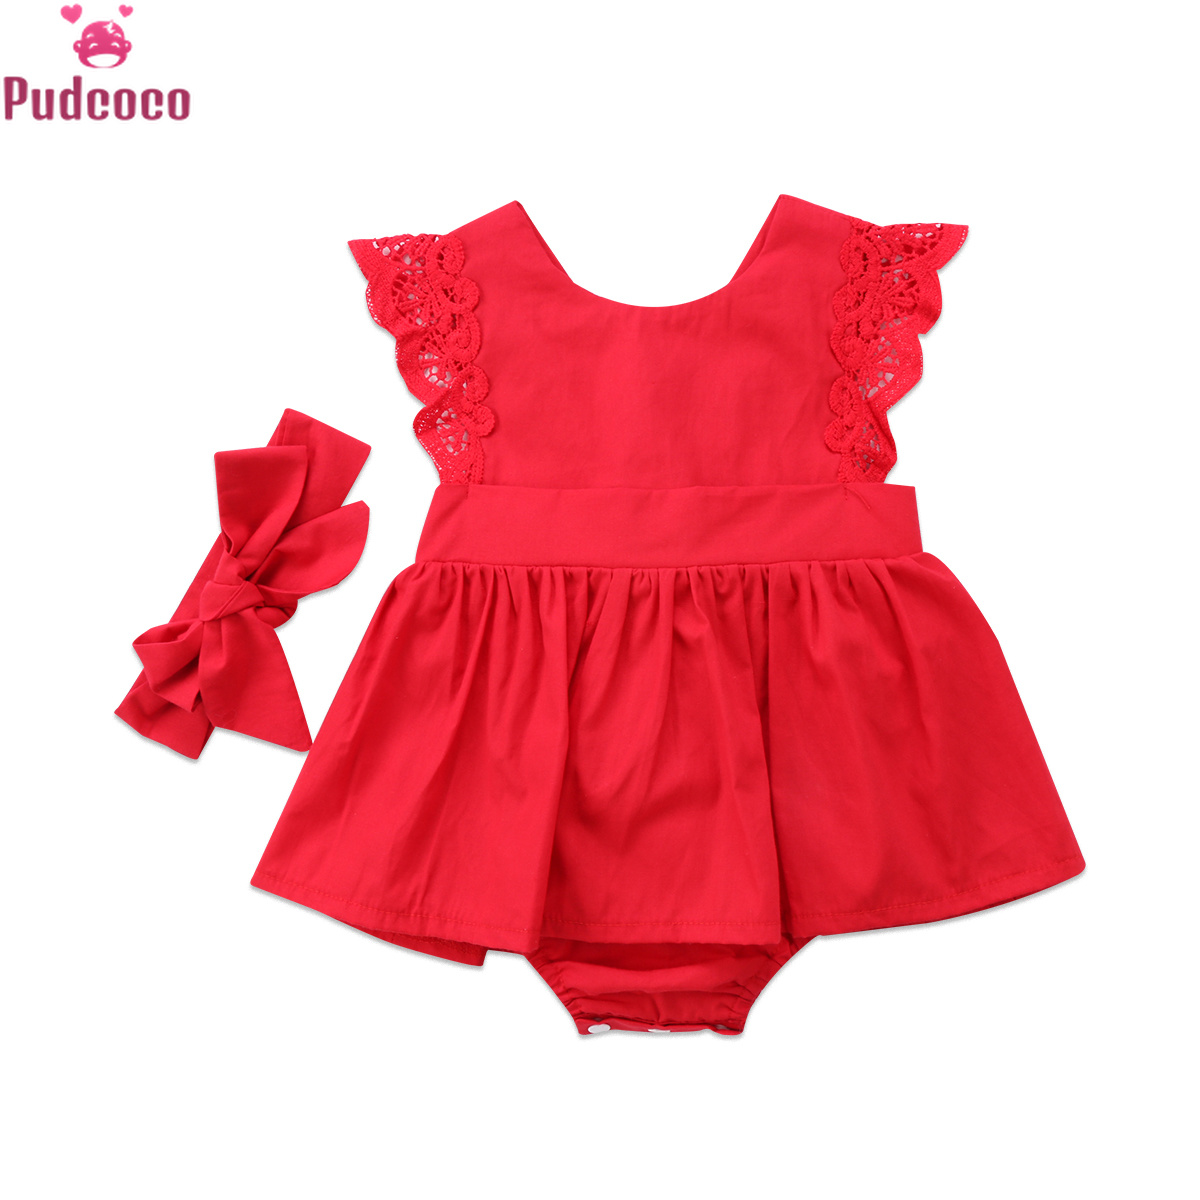 Summer Sleeveless Red Lace Baby Girl Romper Dress Newborn Girls Christmas Ruffle Princess Dresses Party Rompers Sunsuit in Dresses from Mother Kids